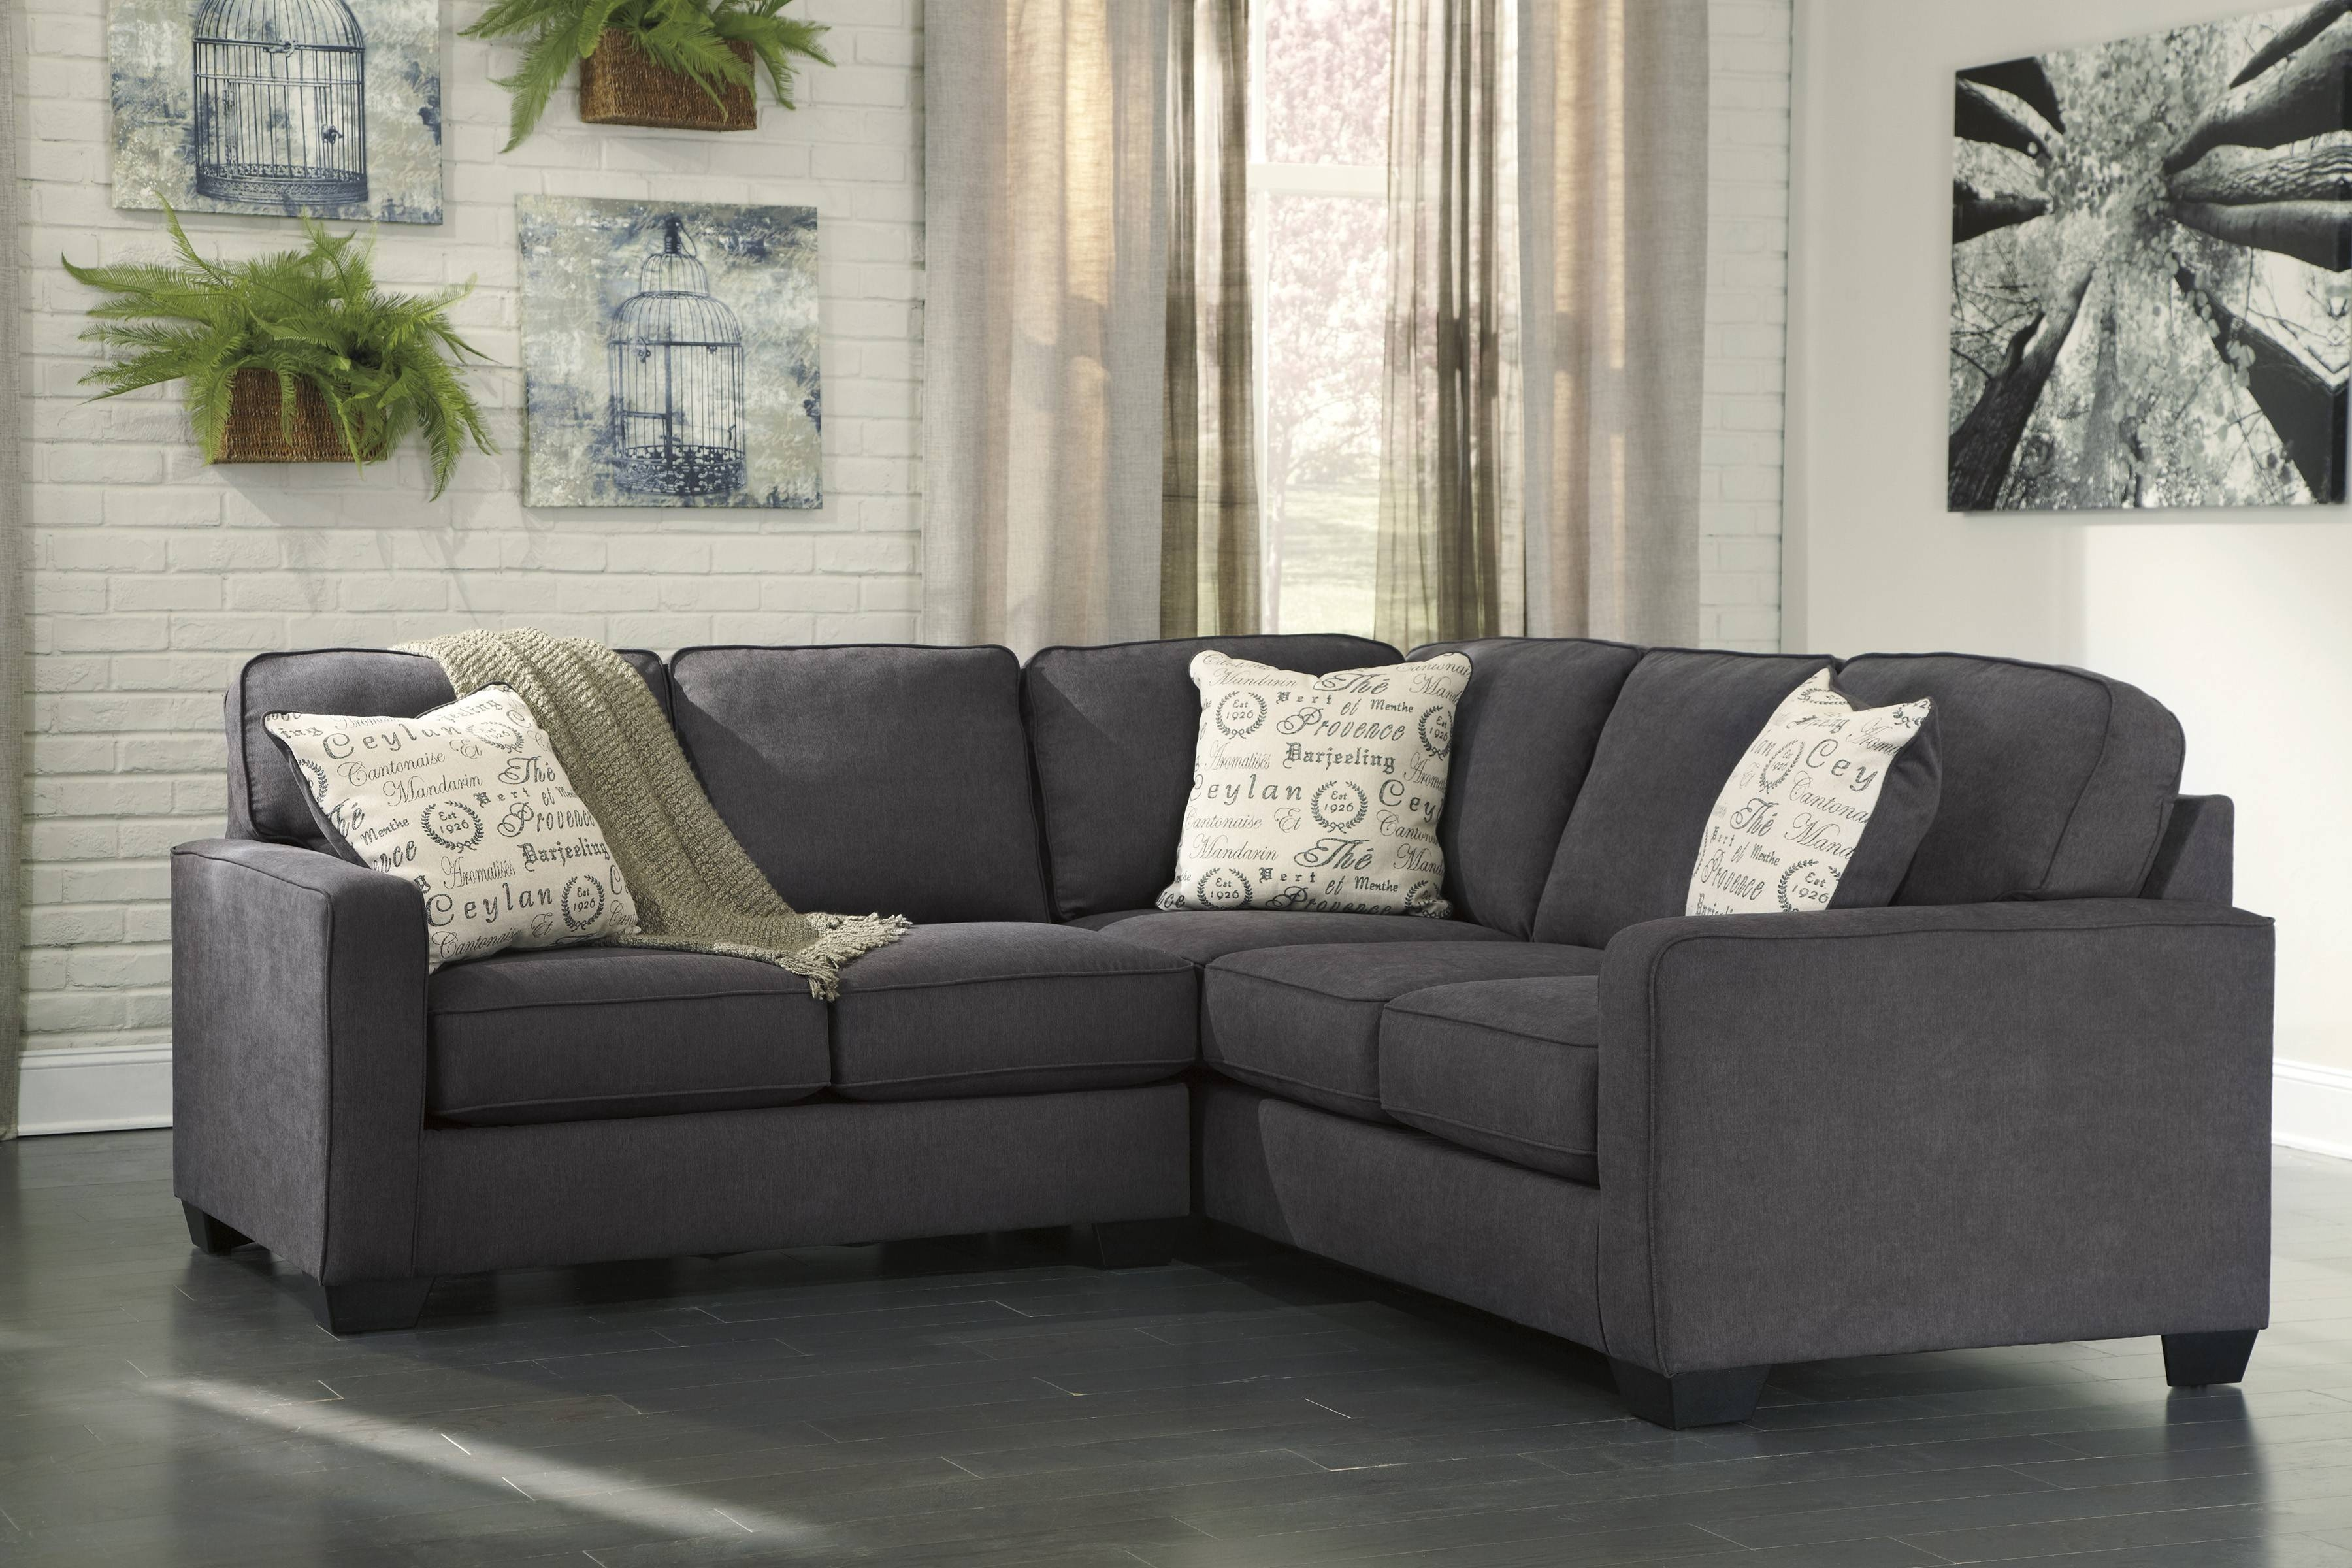 Alenya Charcoal 2-Piece Sectional Sofa For $625.00 - Furnitureusa in 2 Piece Sofas (Image 3 of 15)